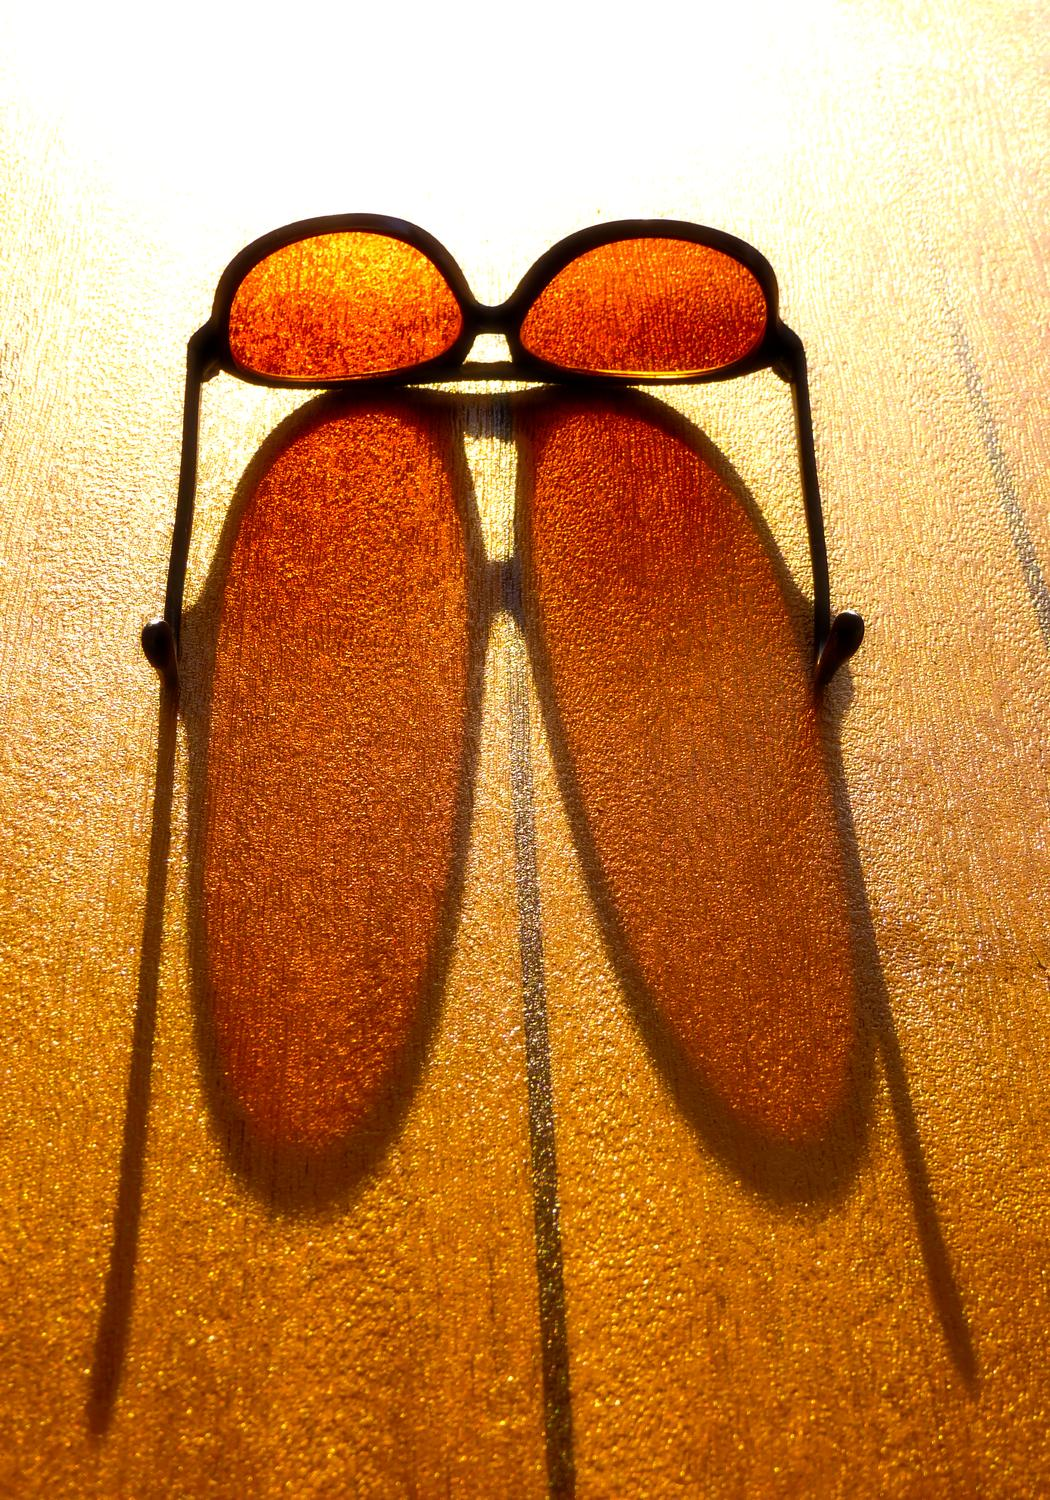 - A long view <br>--- Click to see ORIGINAL --- - - Sunglasses - Panasonic DMC-fz35 - summer - Tony Karp, design, art, photography, techno-impressionist, techno-impressionism, aerial photography , drone , drones , dji , mavic pro , video , 3D printing - Books -